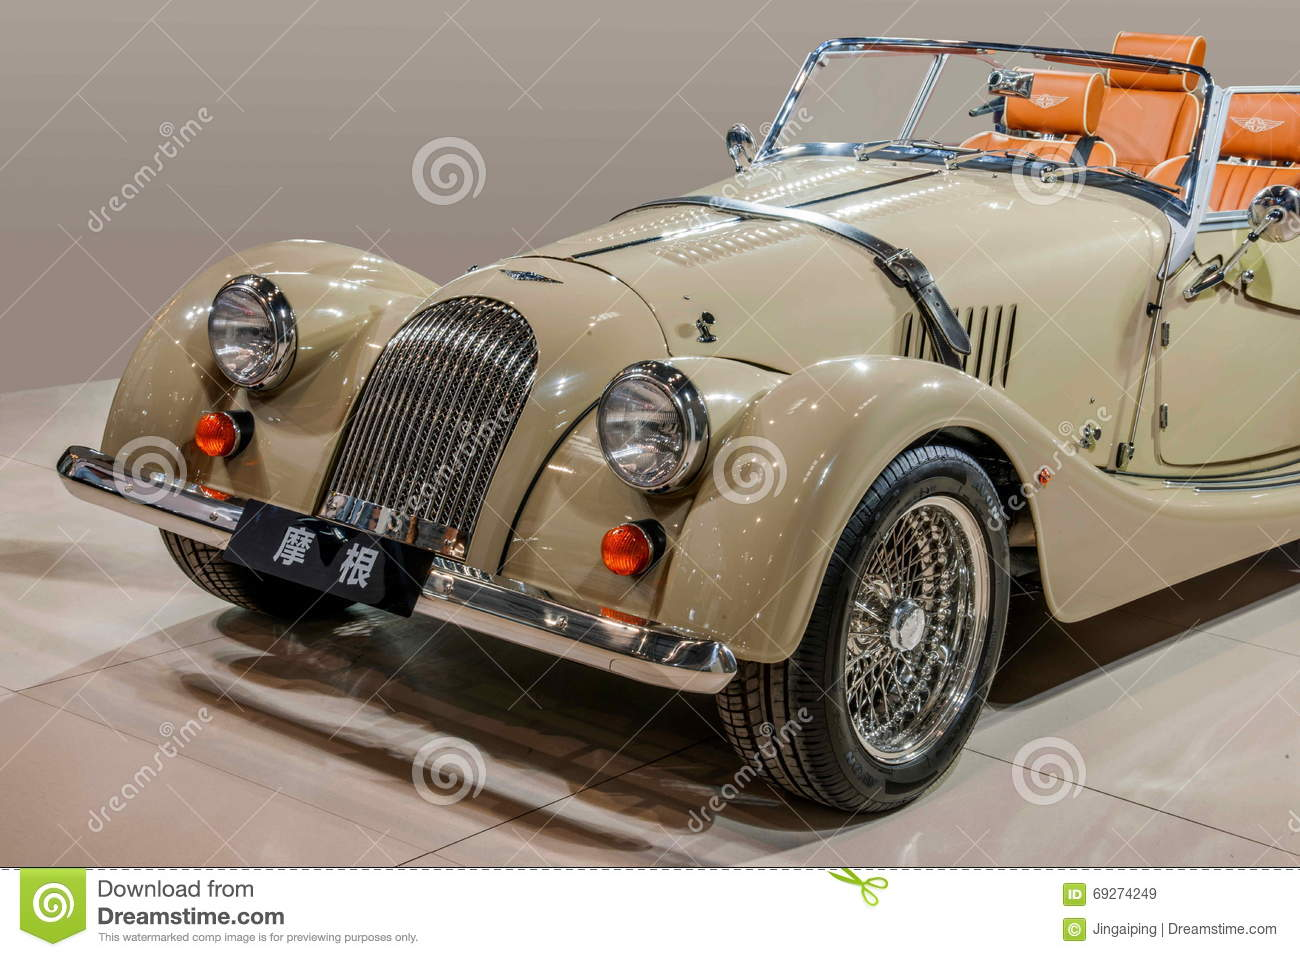 Morgan classic cars editorial stock image. Image of consistent ...